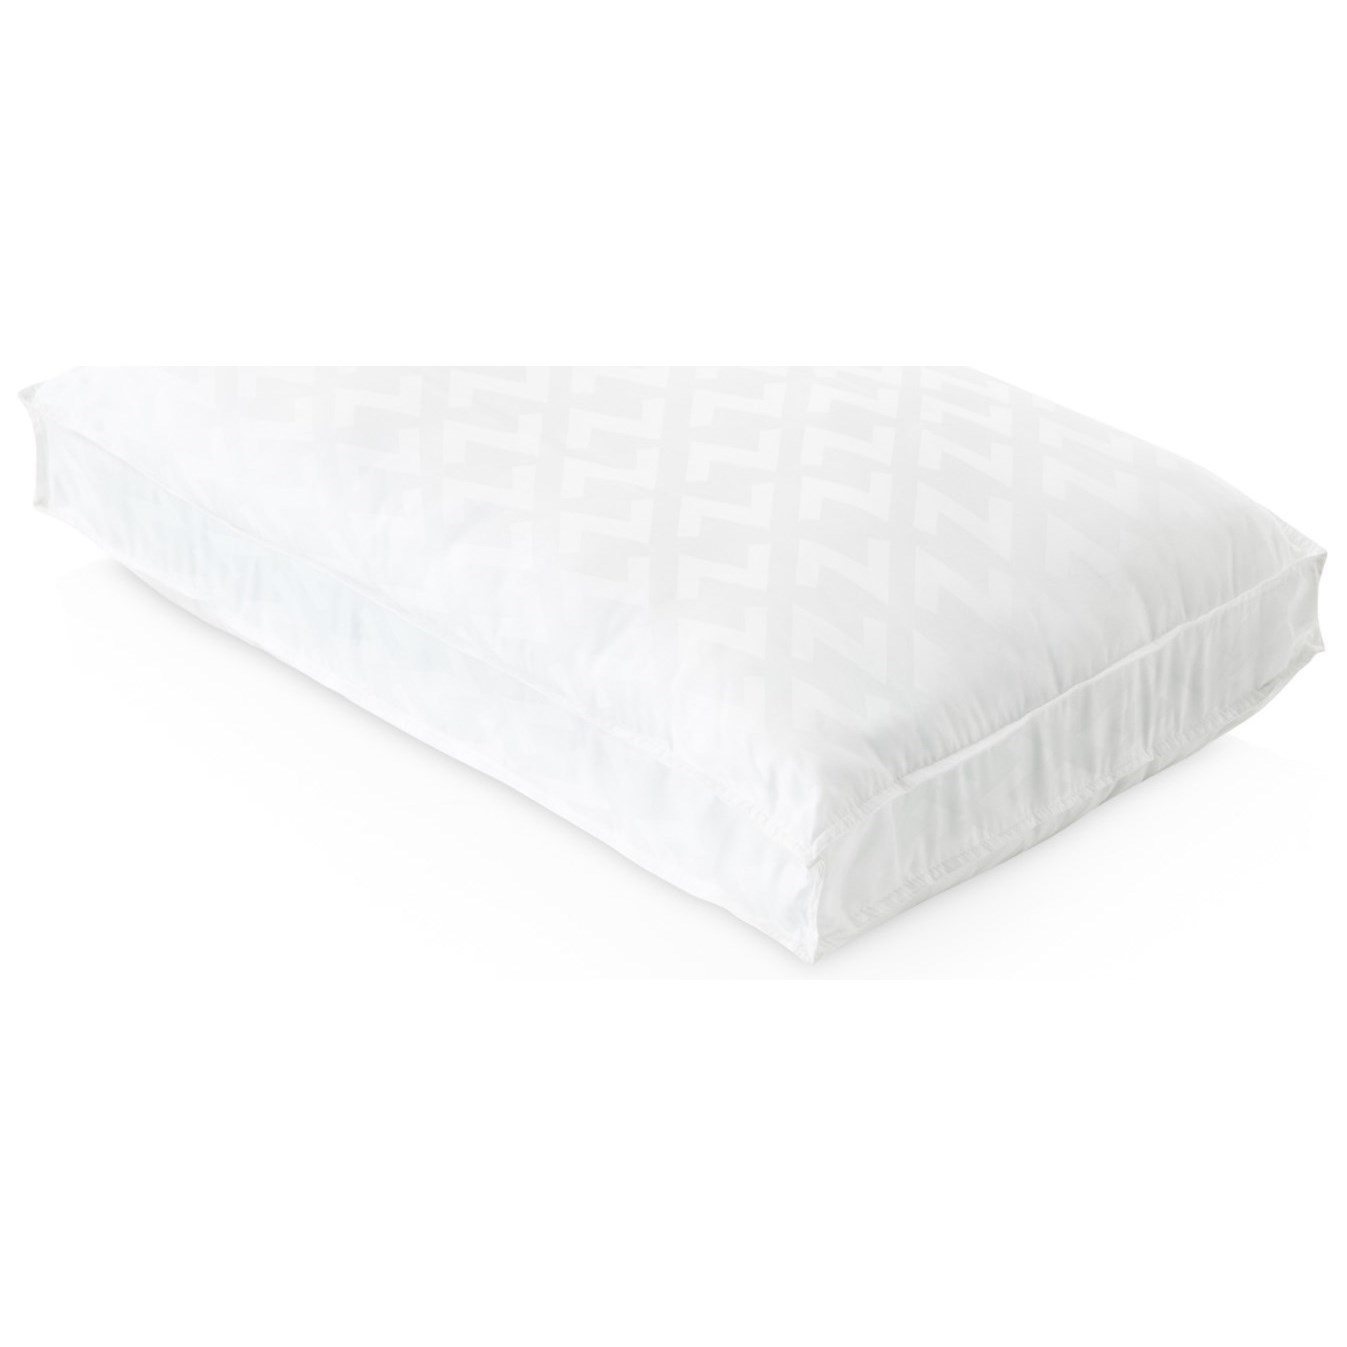 Malouf Gel Convolution™ Queen Gel Convolution™ Low Loft Pillow - Item Number: ZZQQLPCOGF